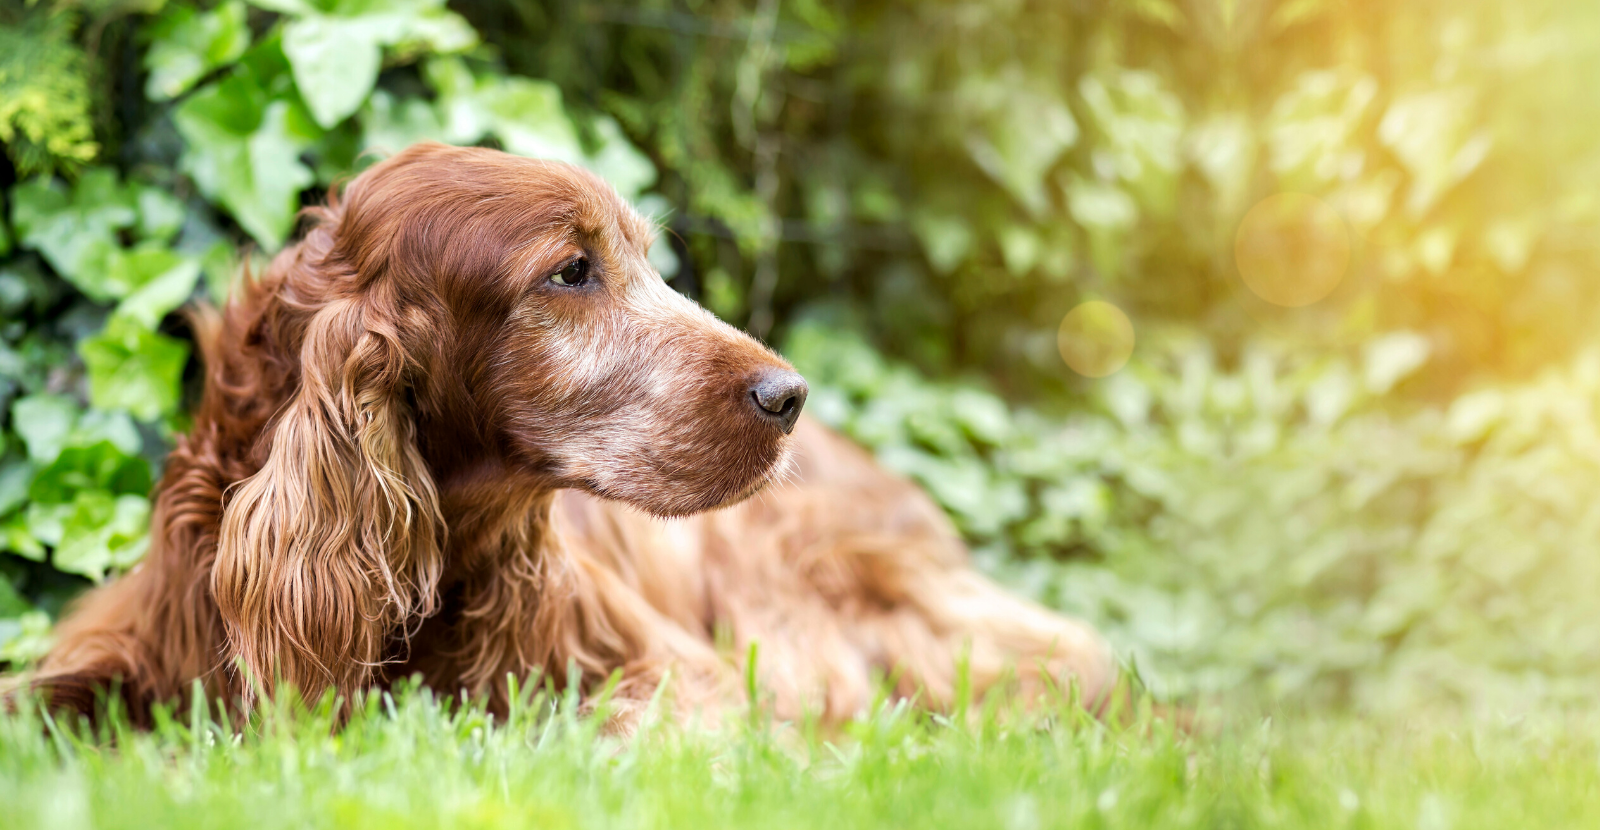 5 Tips for Taking Care of Your Senior Dog